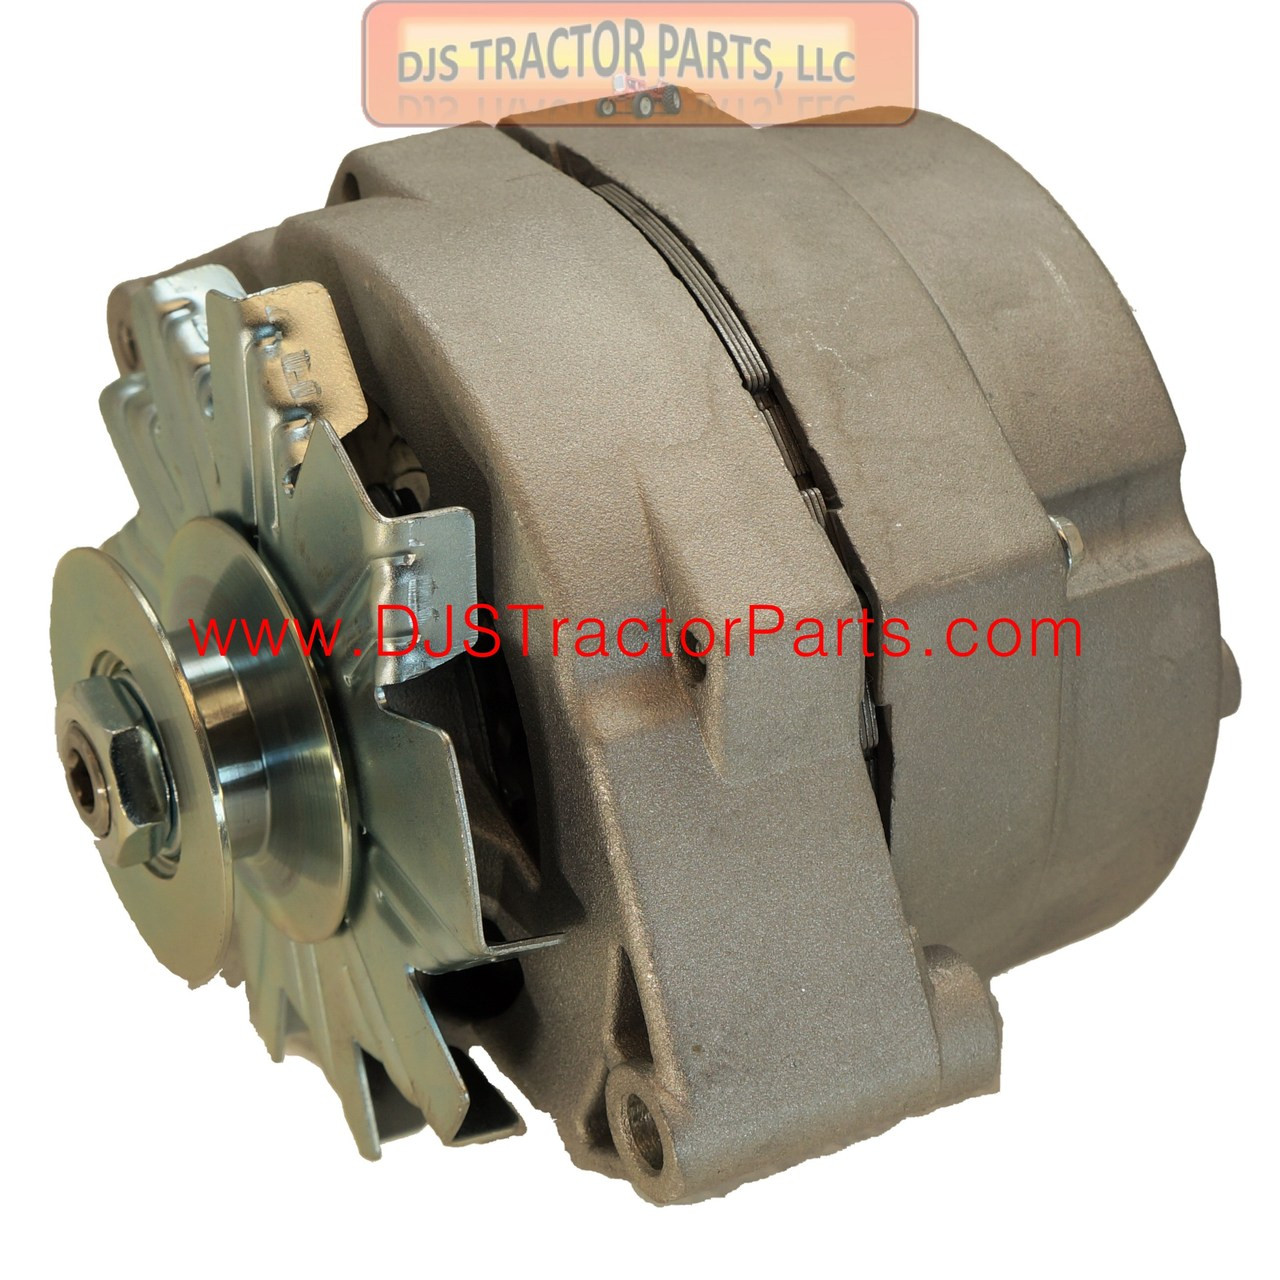 small resolution of 63 amp one wire alternator with pulley used for converting 6 volt to 12 volt ab 418d djs tractor parts llc